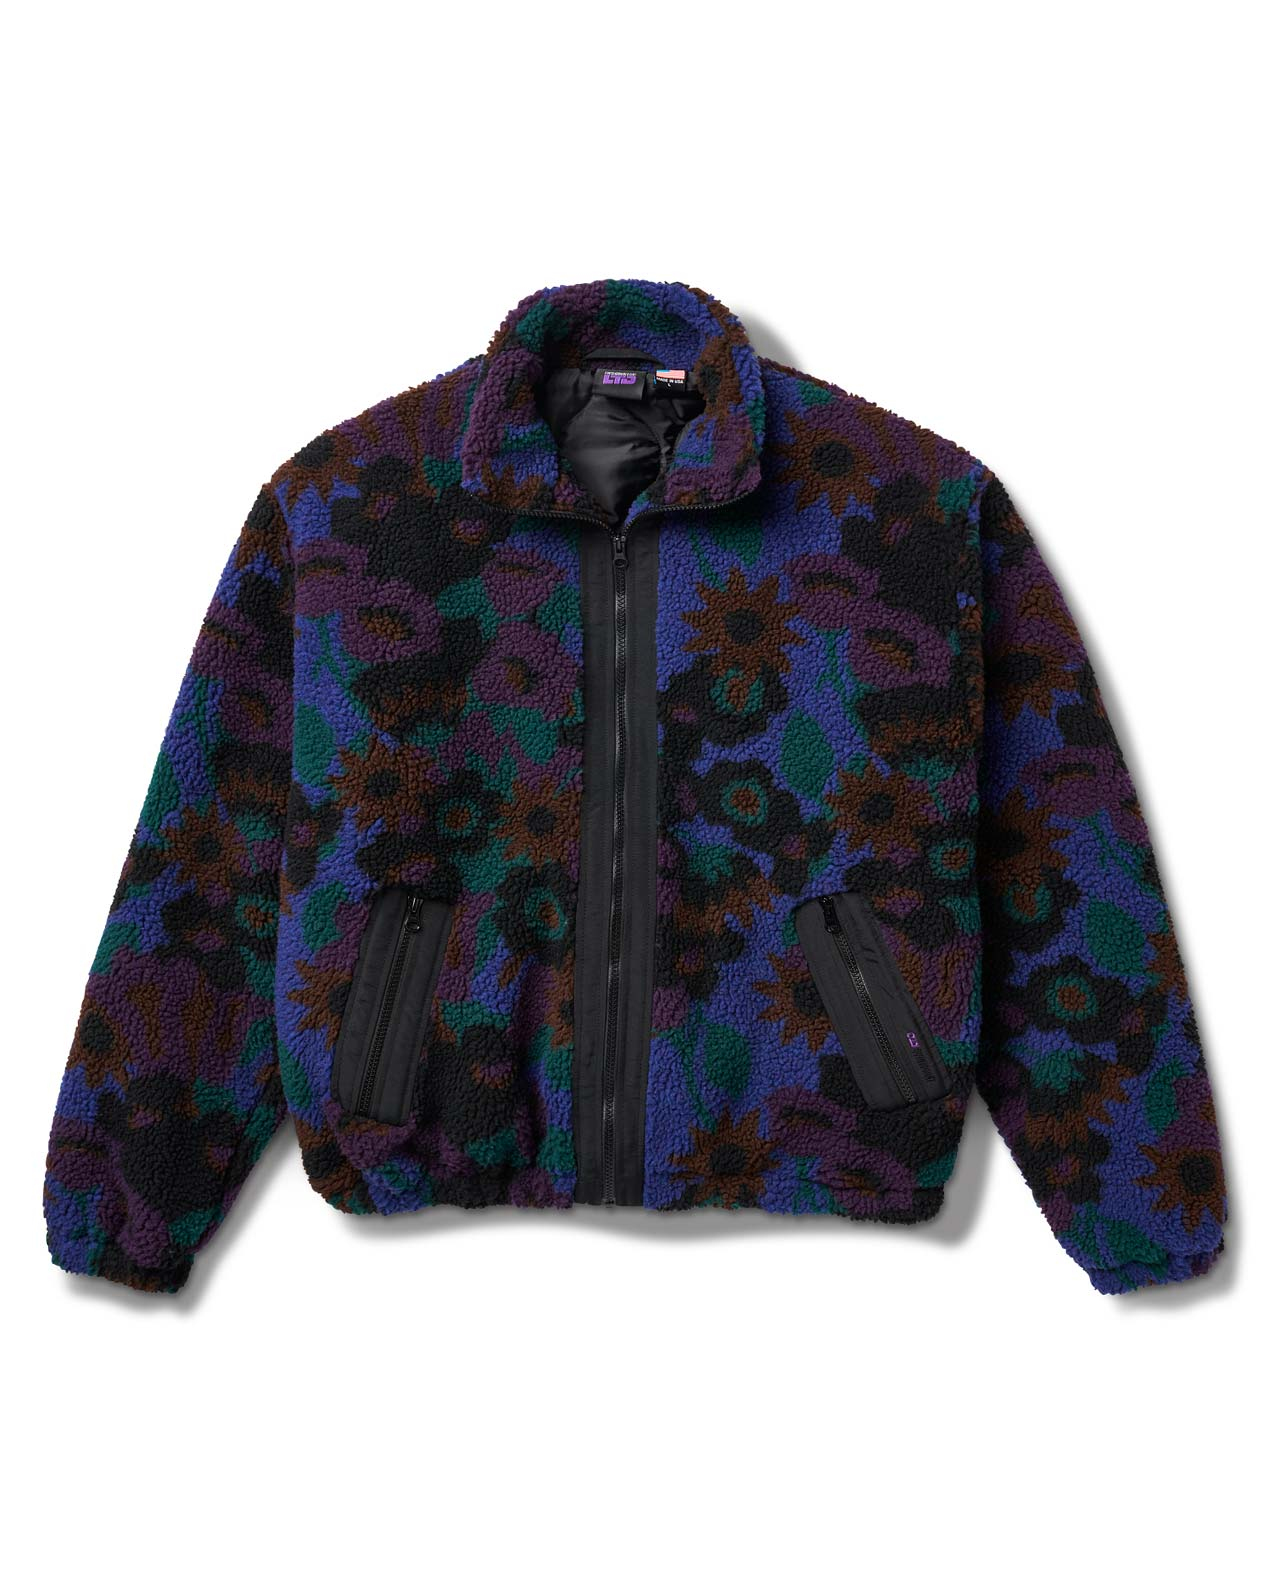 Floradelic Jacket Black